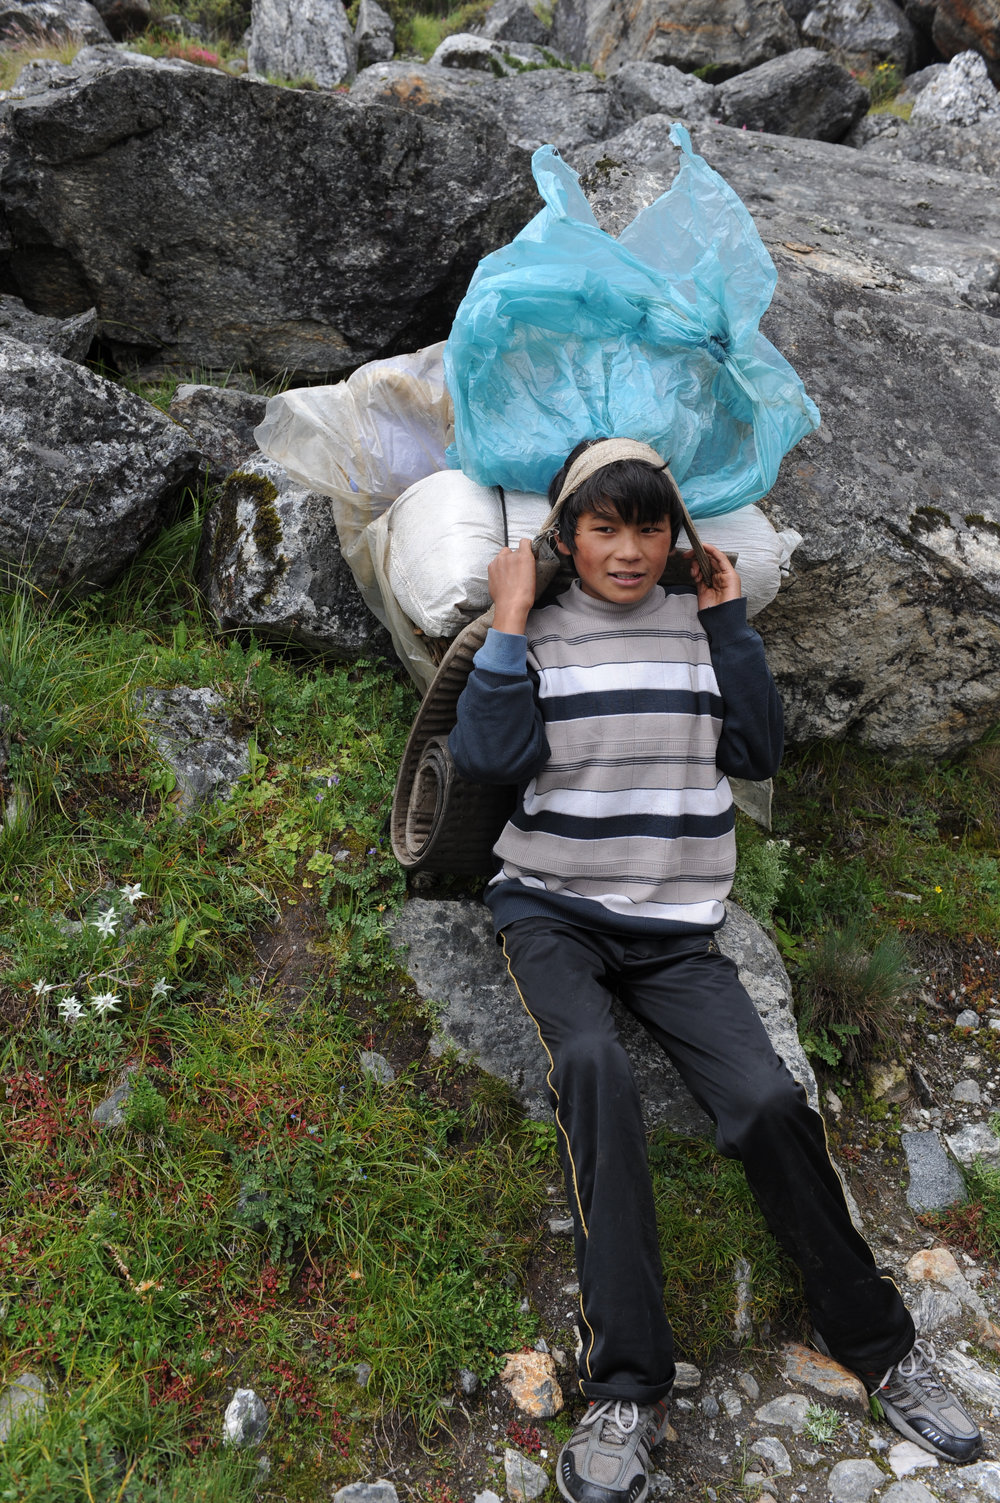 Young sherpa: 13-year old, already carrying 30 KG.